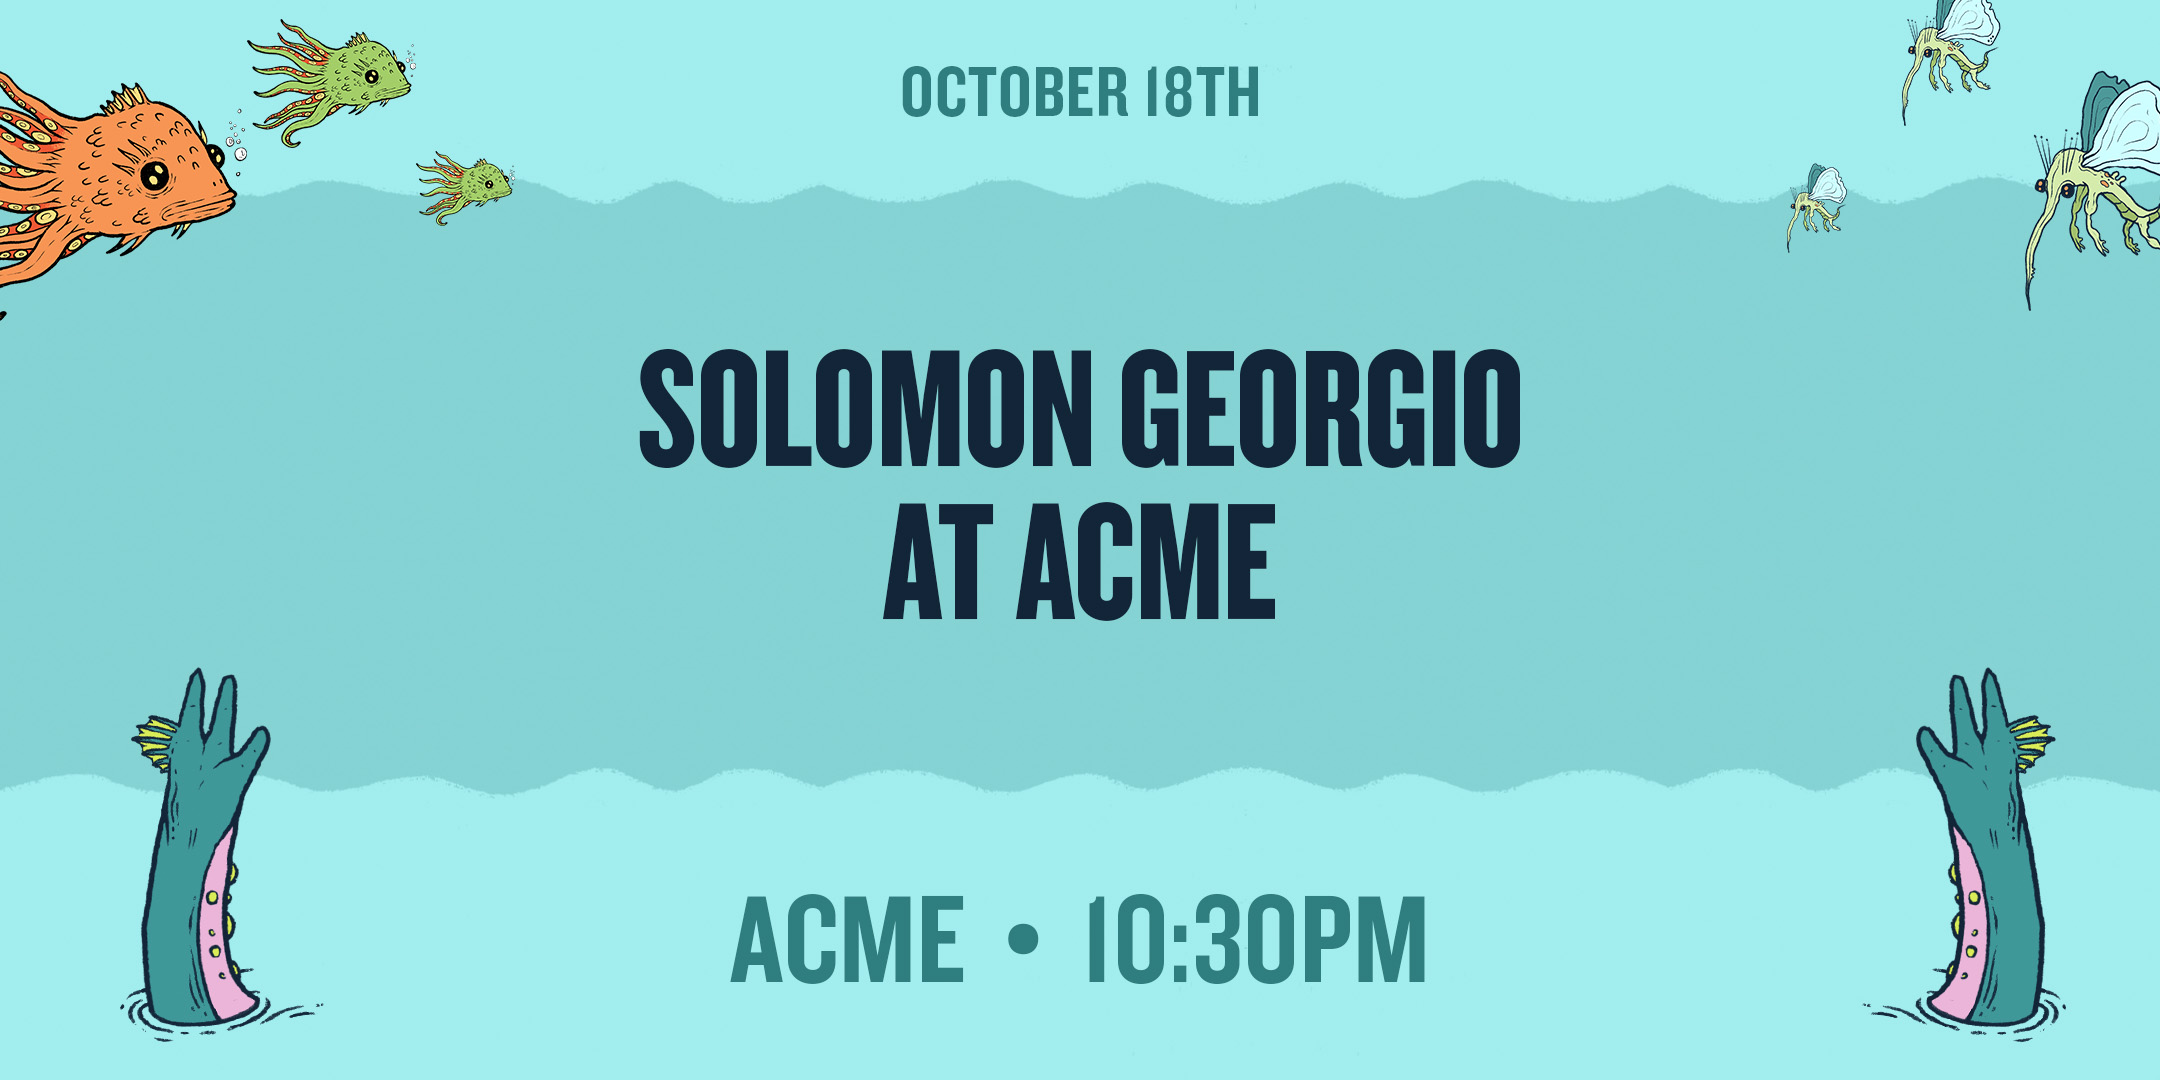 OCT18-Solomon Georgio at Acme.jpg